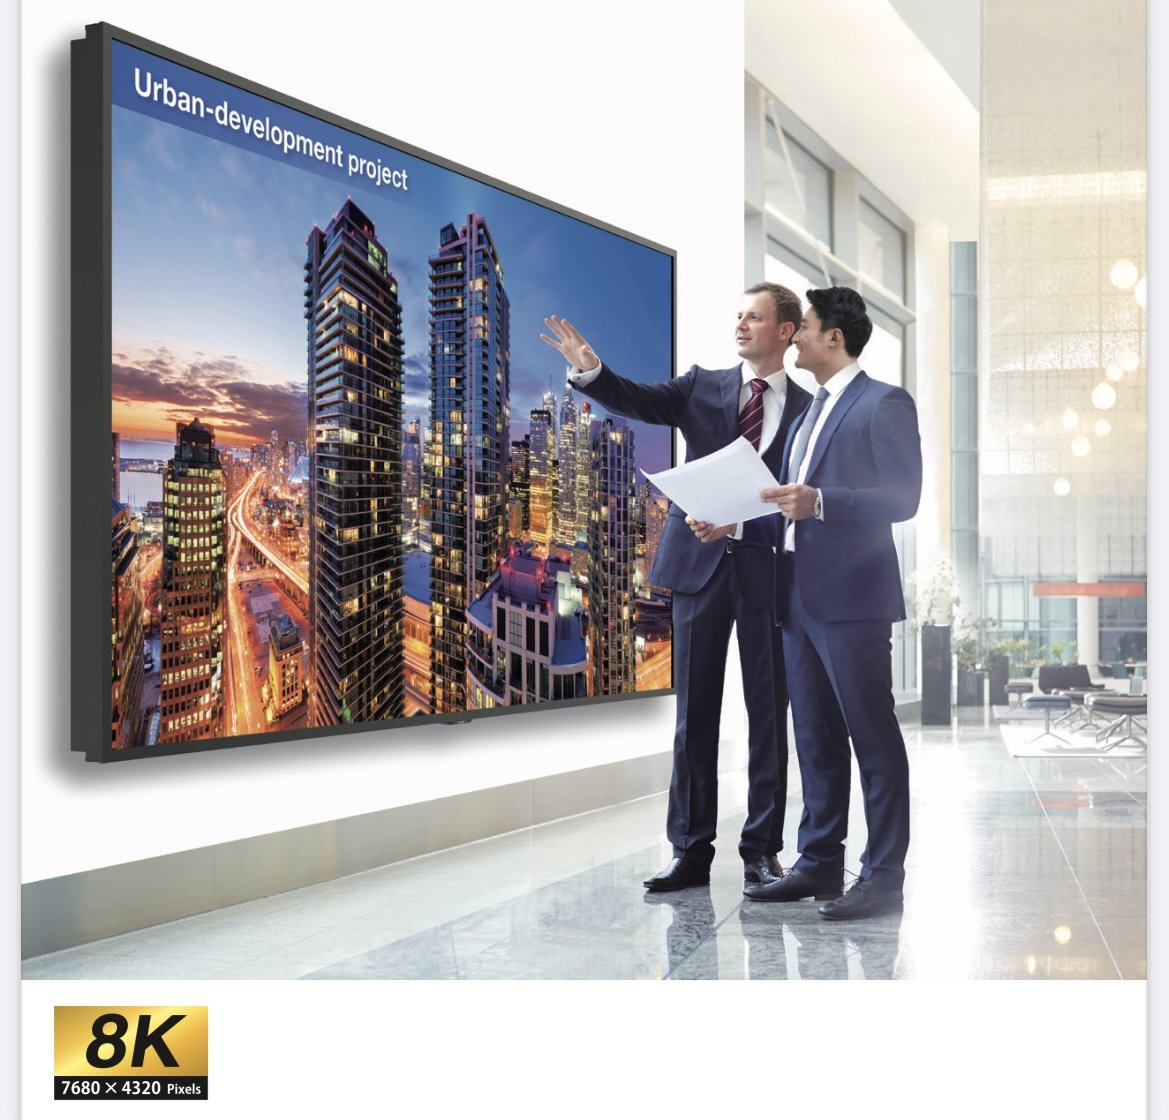 8K TVs and Large Format Displays